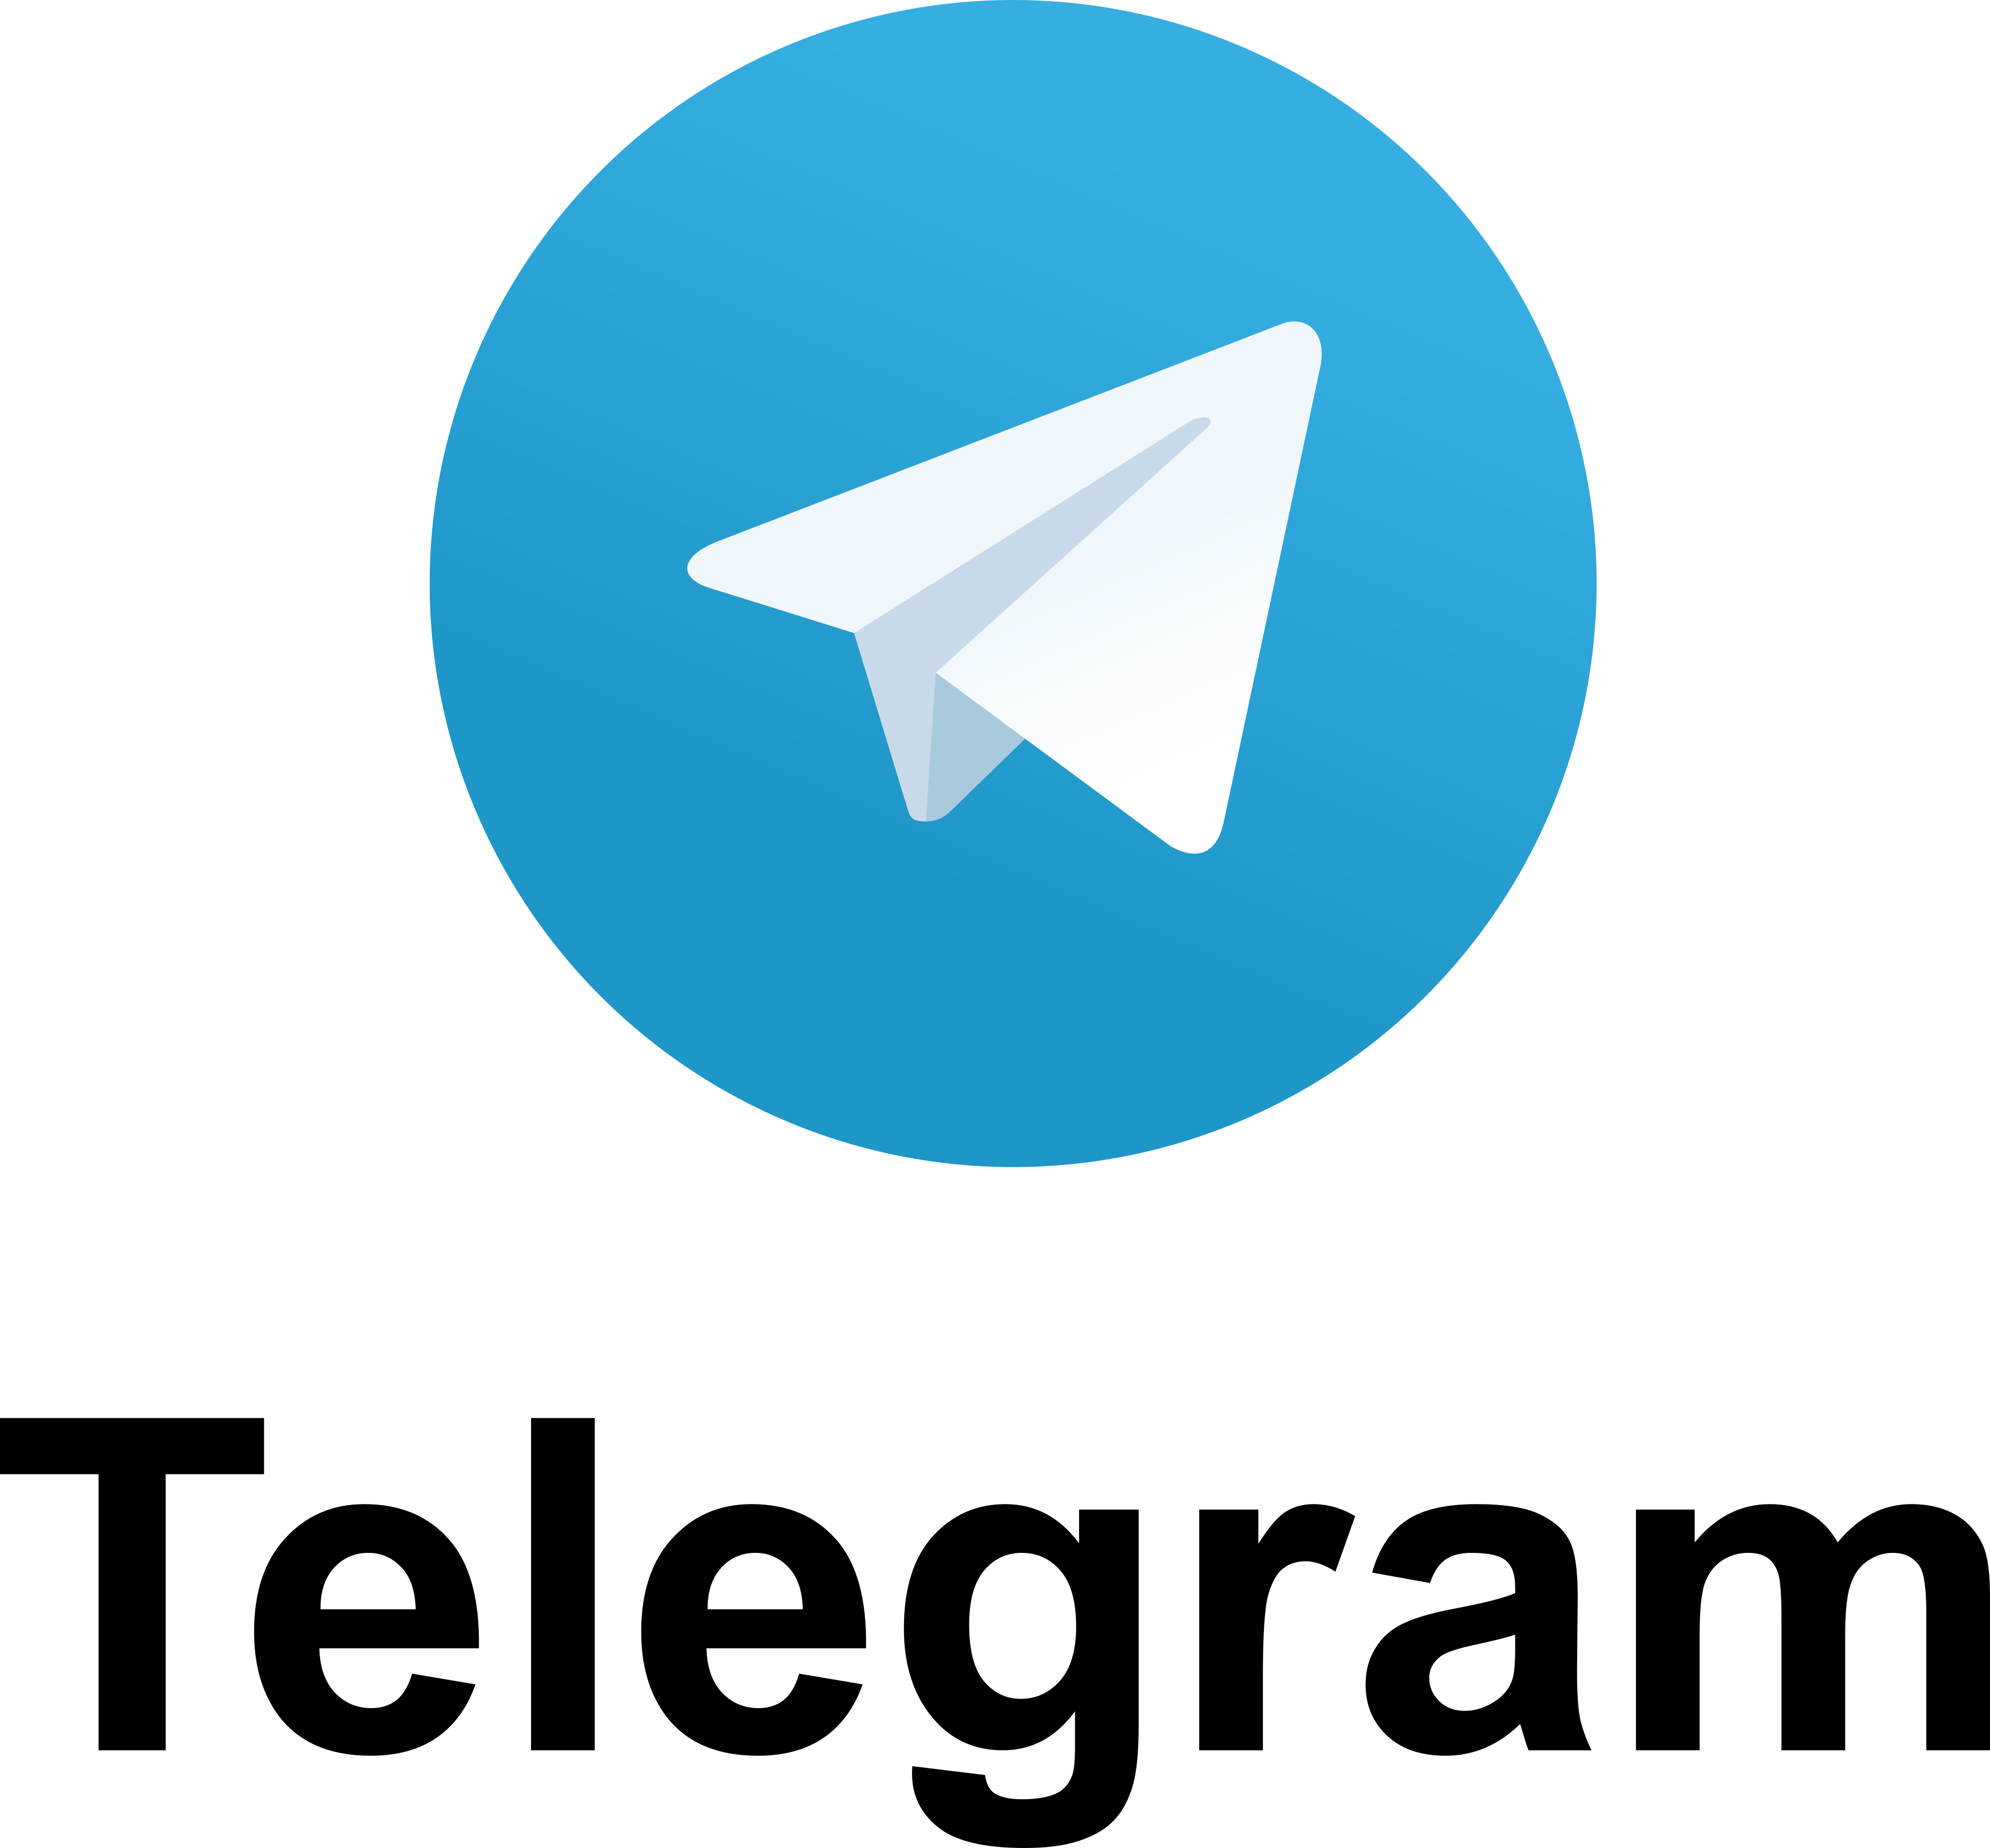 telegram png image collections for download #21823